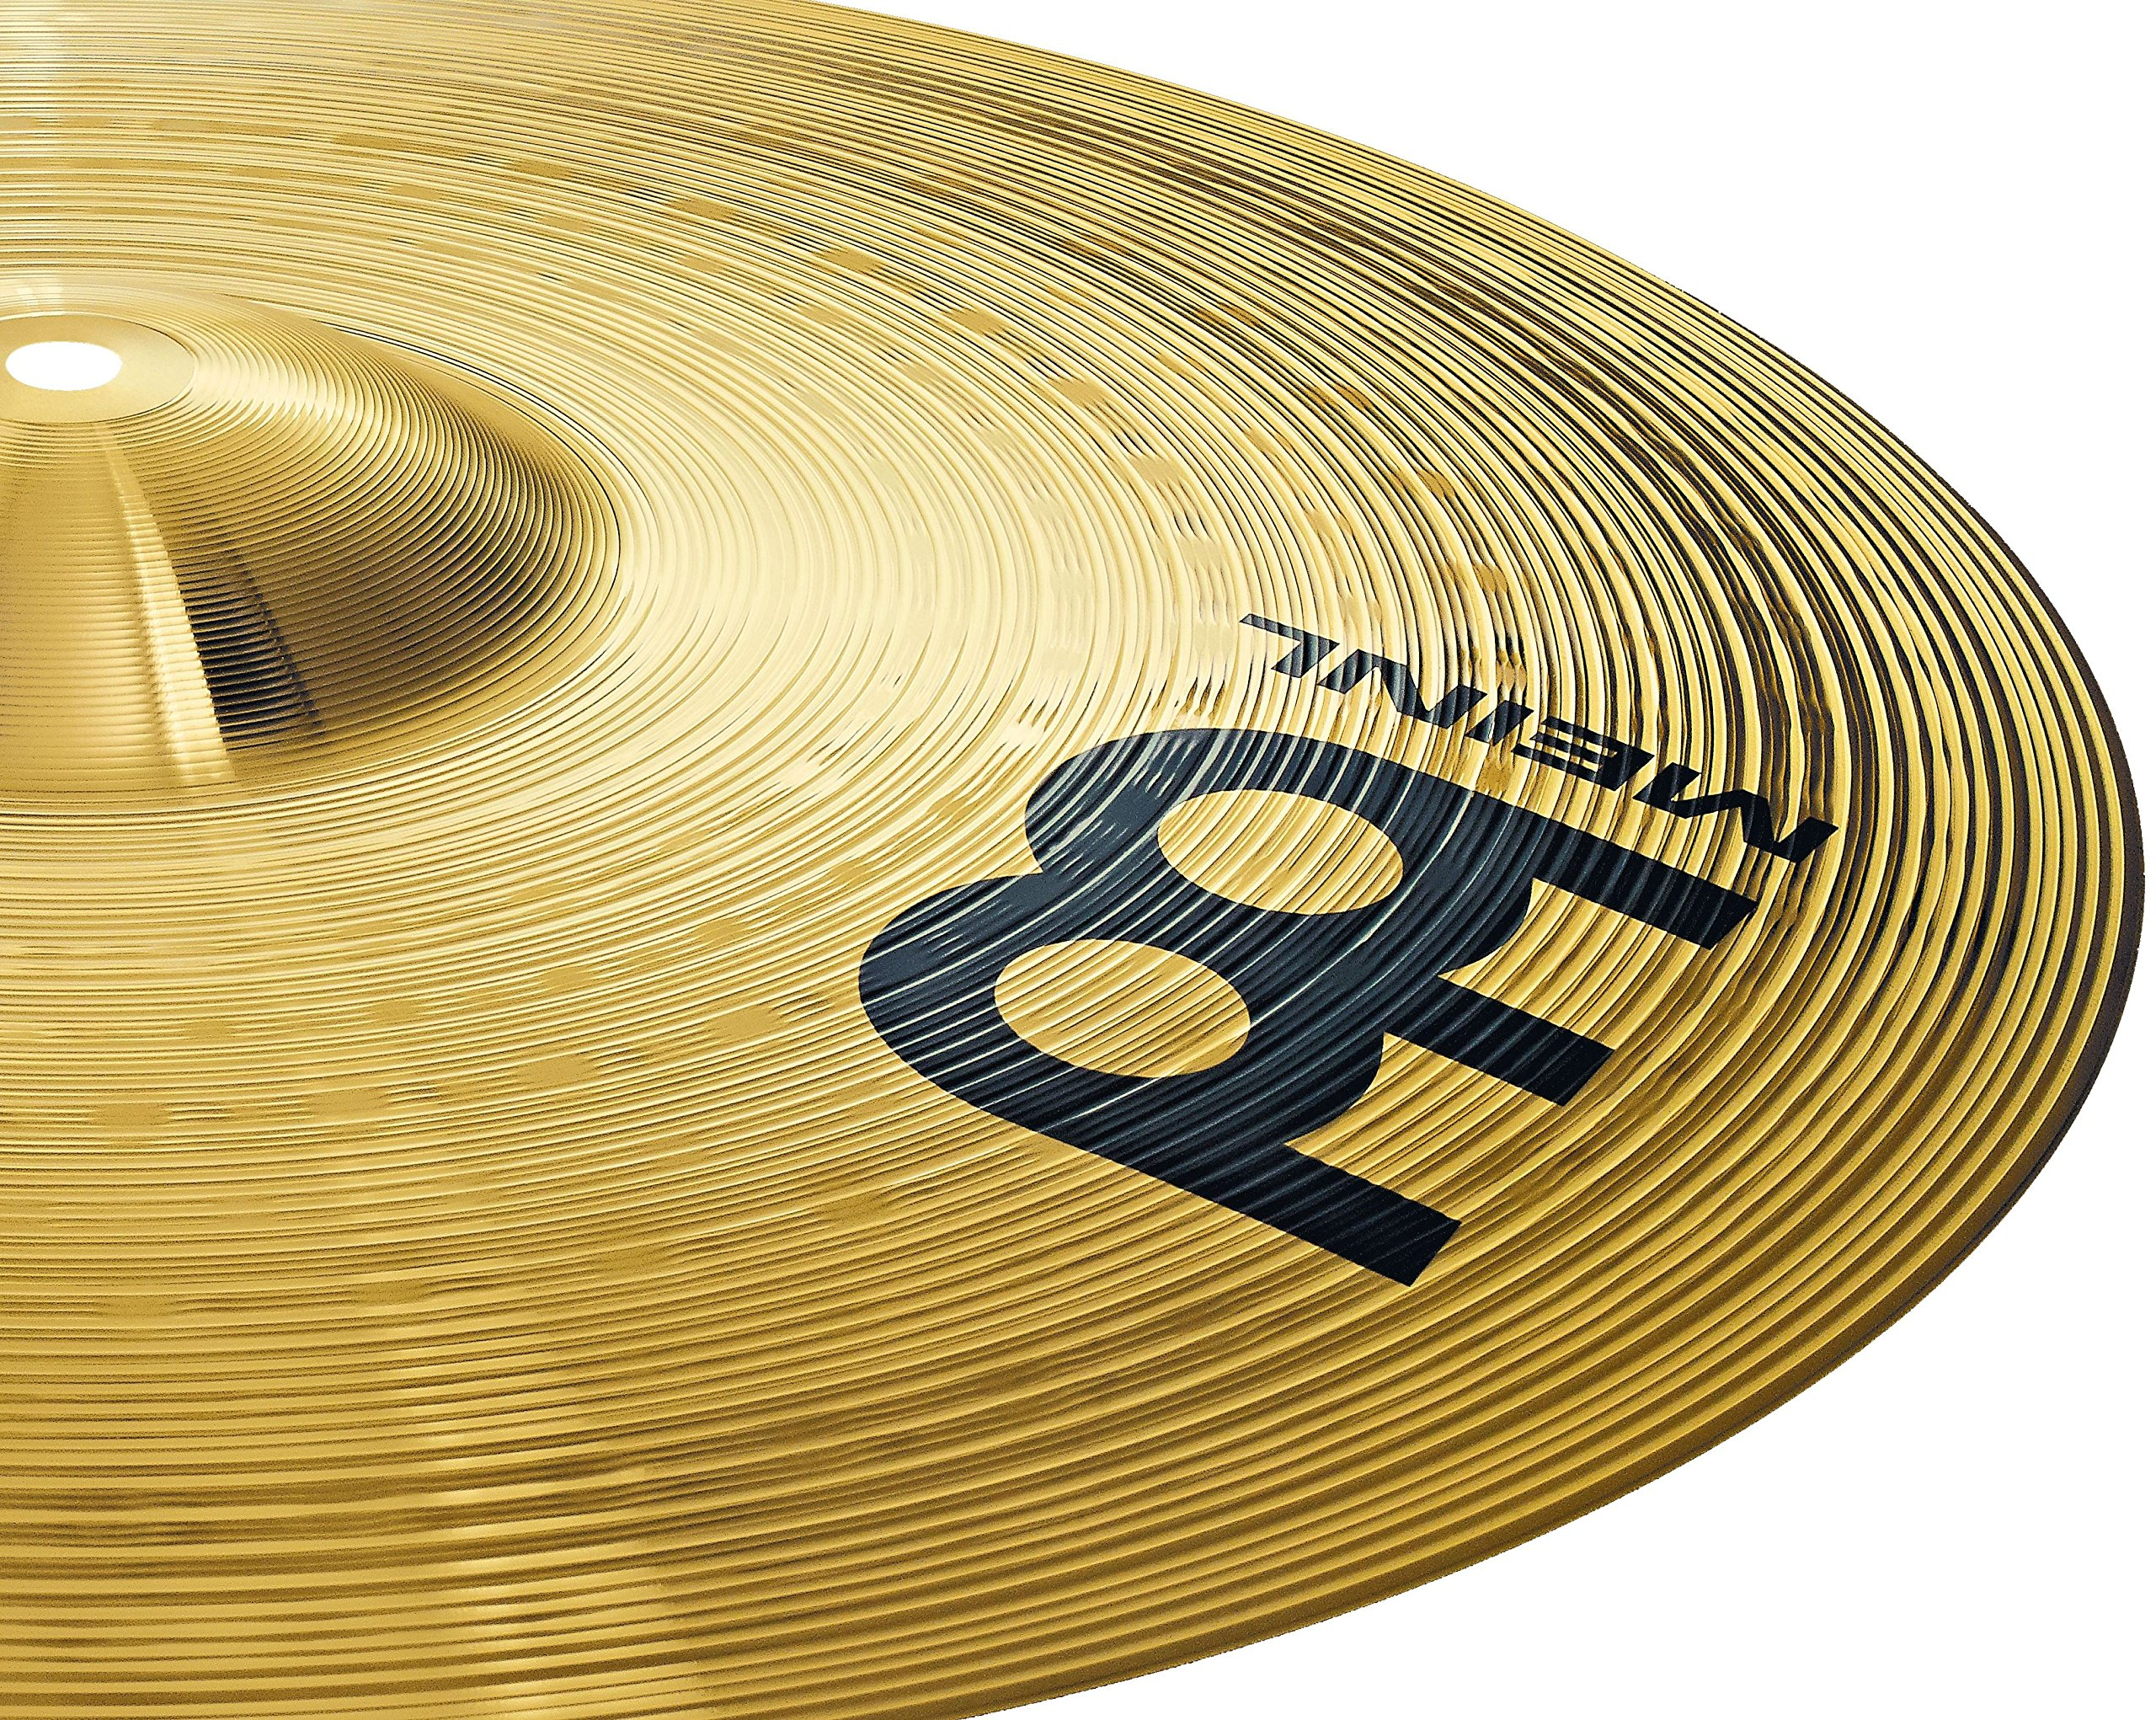 Meinl Cymbals HCS20R 20'' HCS Brass Ride Cymbal for Drum Set (VIDEO) by Meinl Cymbals (Image #4)